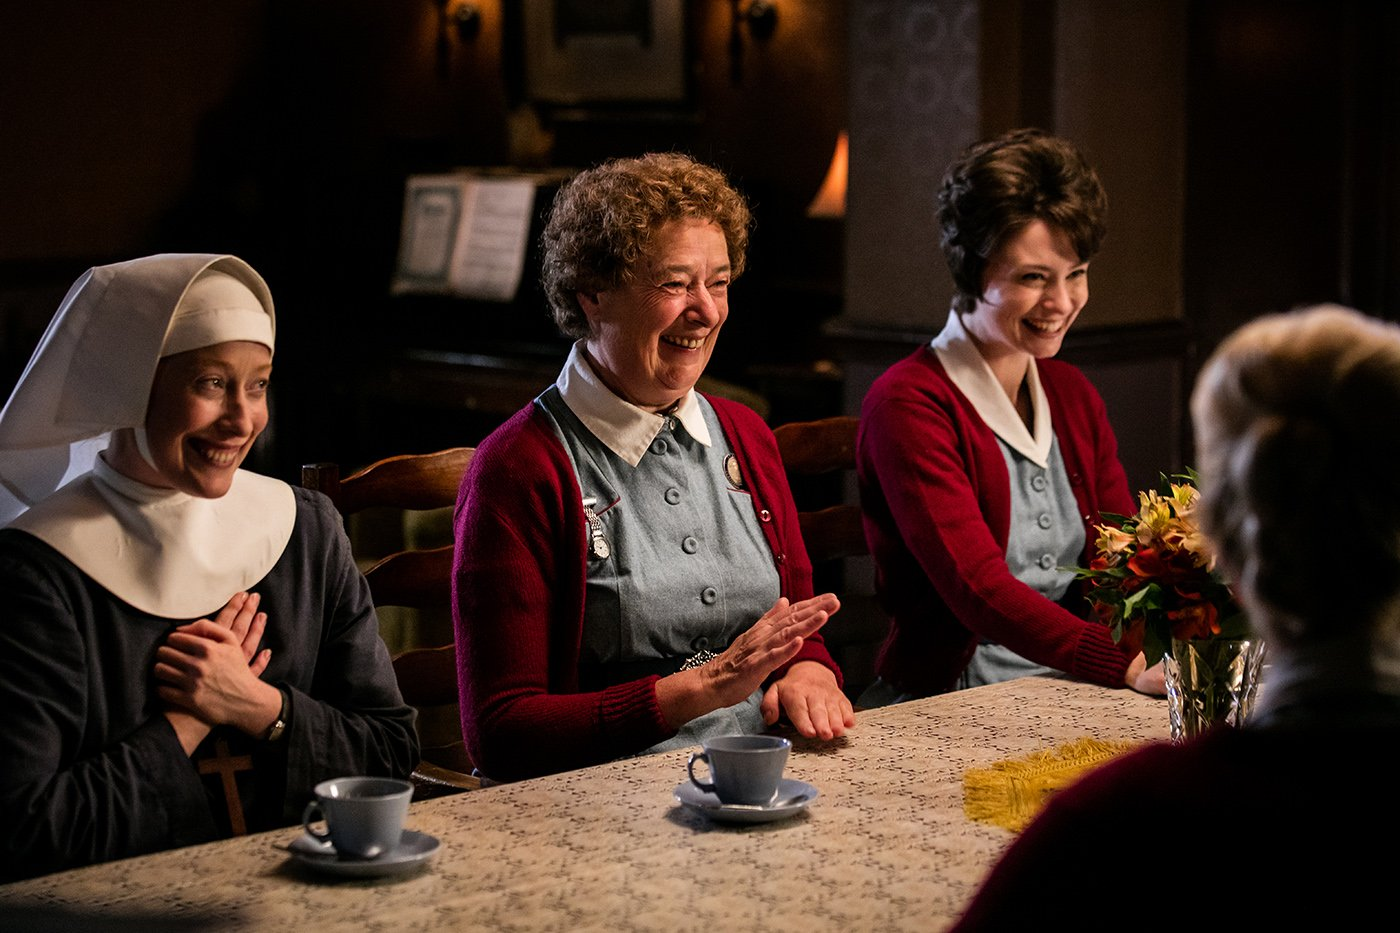 Sister Winifred, Nurse Crane, and Valerie Dyer in 'Call the Midwife.' Photo: Neal Street Productions 2016